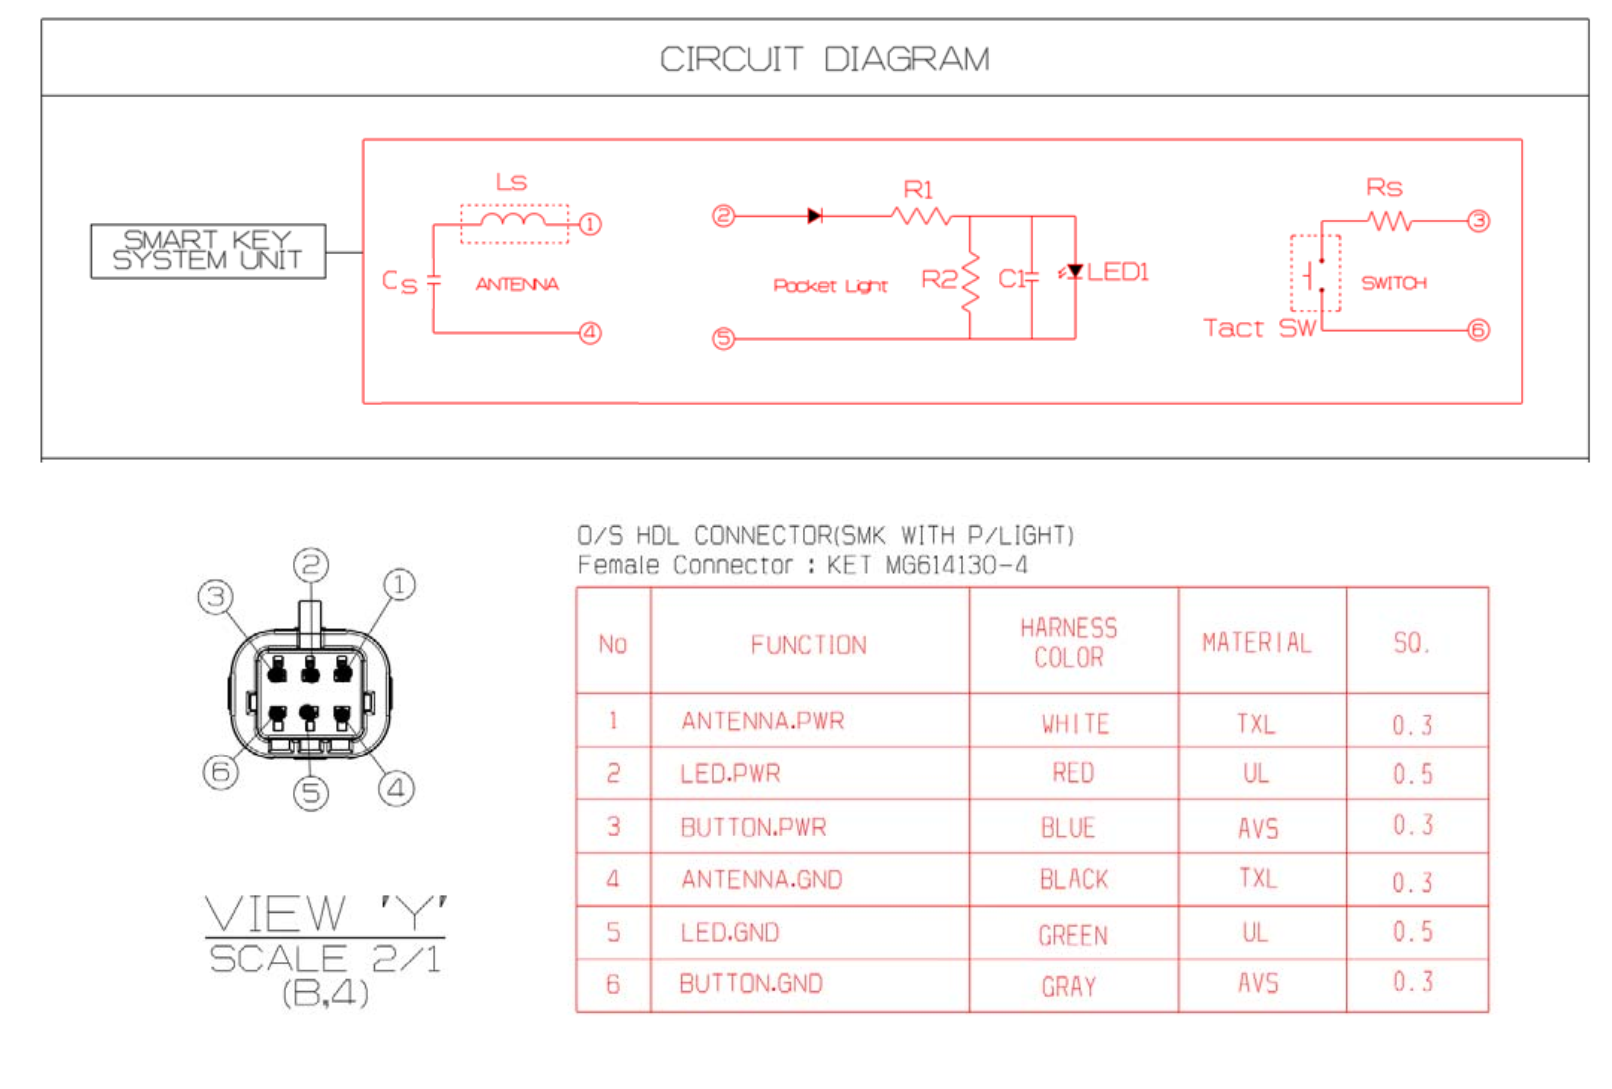 KGEA-DHSL electrical diagram